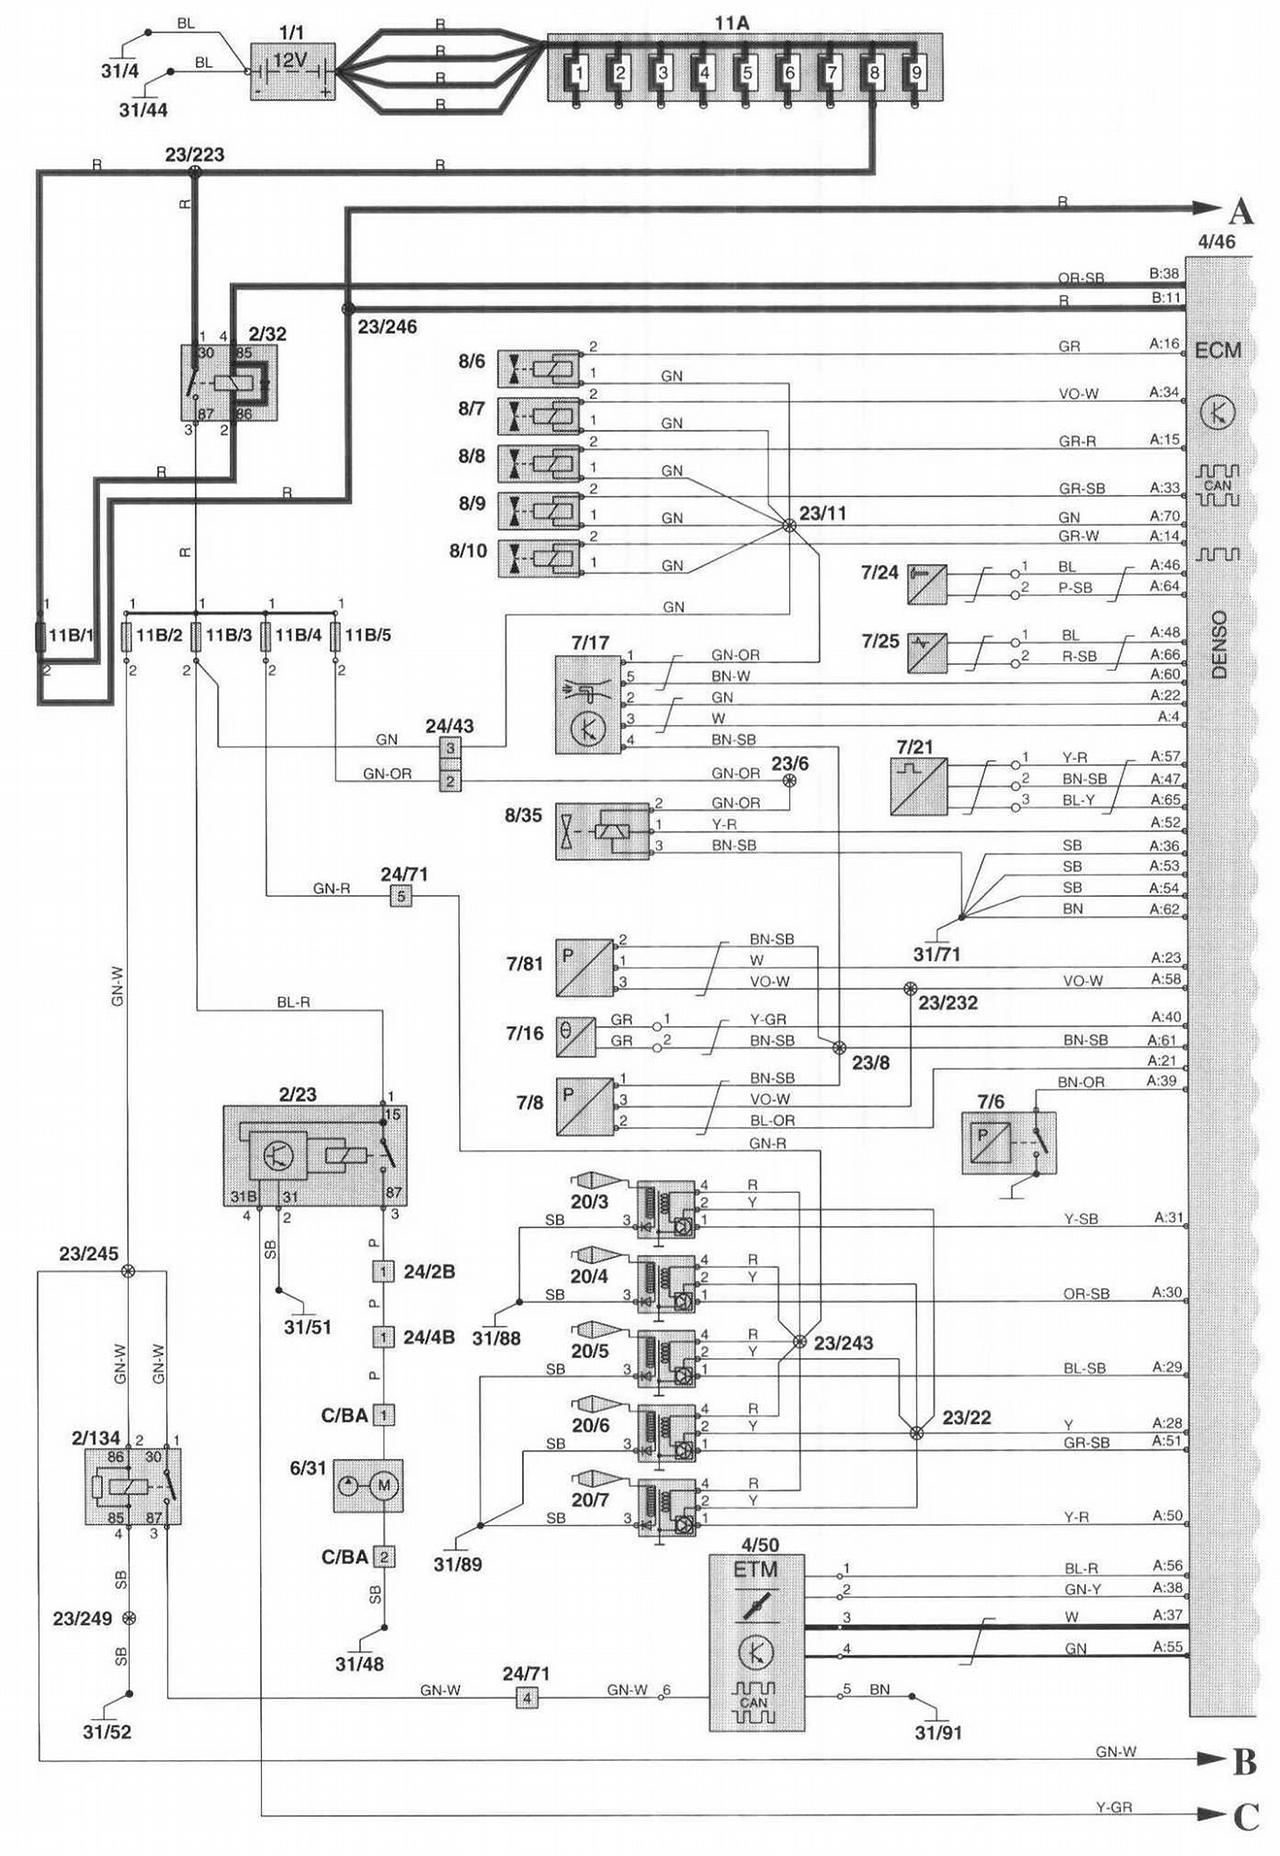 Volvo Wia Wiring Diagram - 36 Volt Club Car Wiring Diagram Golf Cart for Wiring  Diagram Schematics | Volvo Truck Ac Wiring Schematics |  | Wiring Diagram Schematics